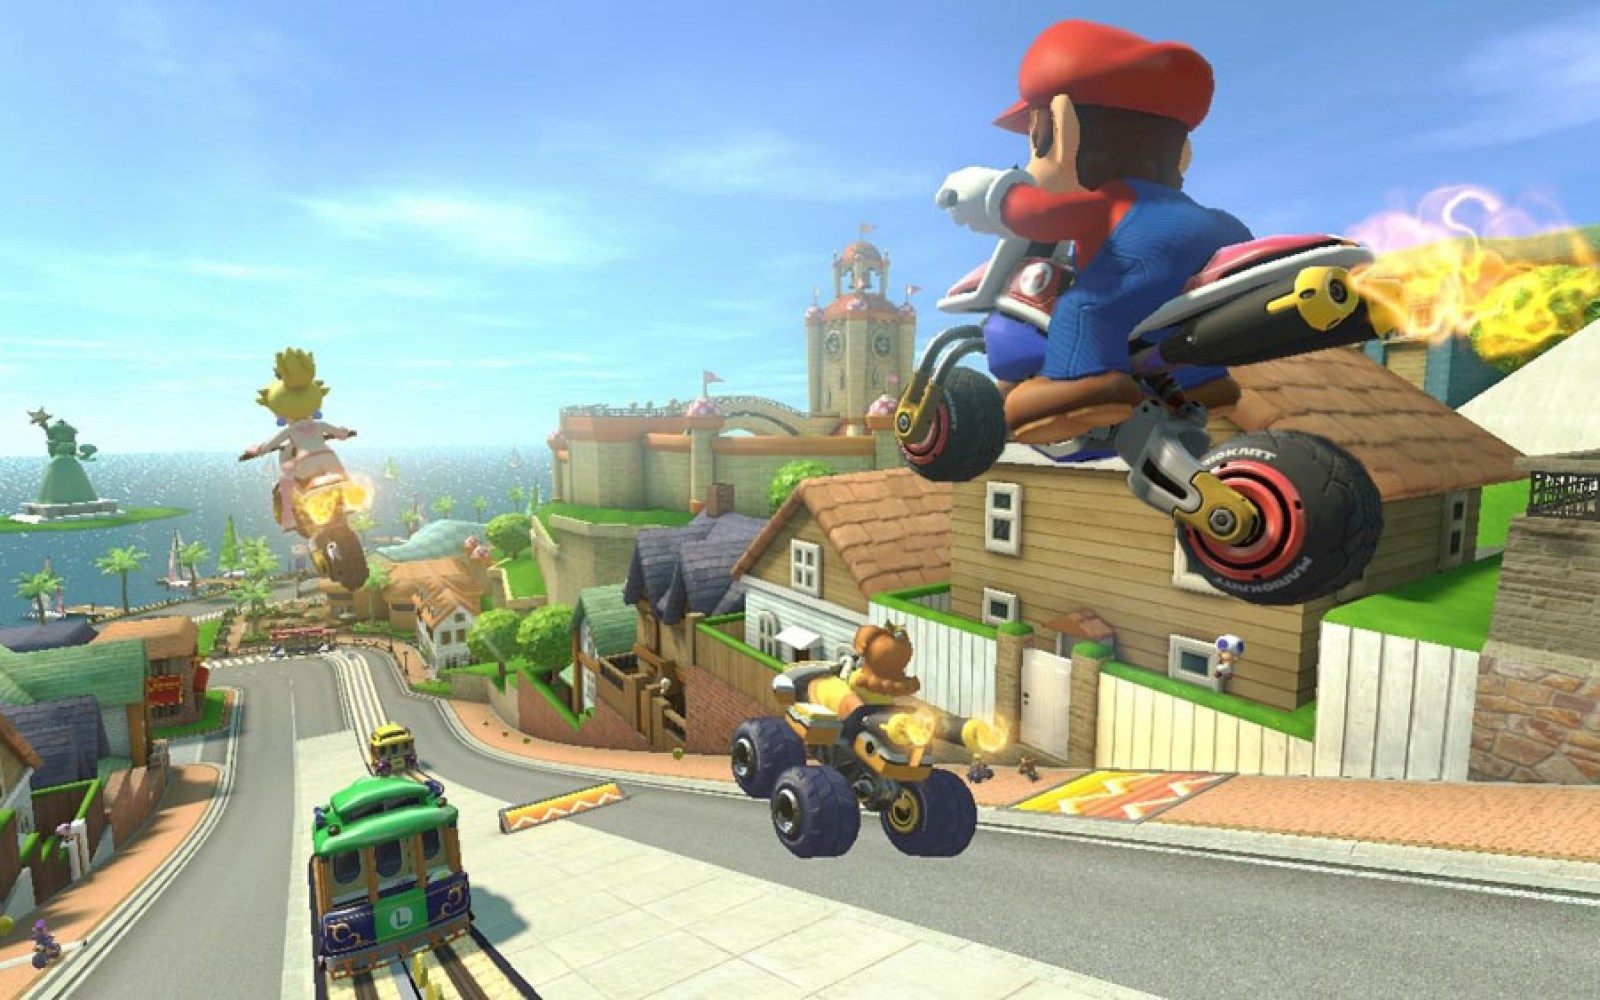 There's good news & bad news for Nintendo fans: iOS rollout will be slow, but expect great games